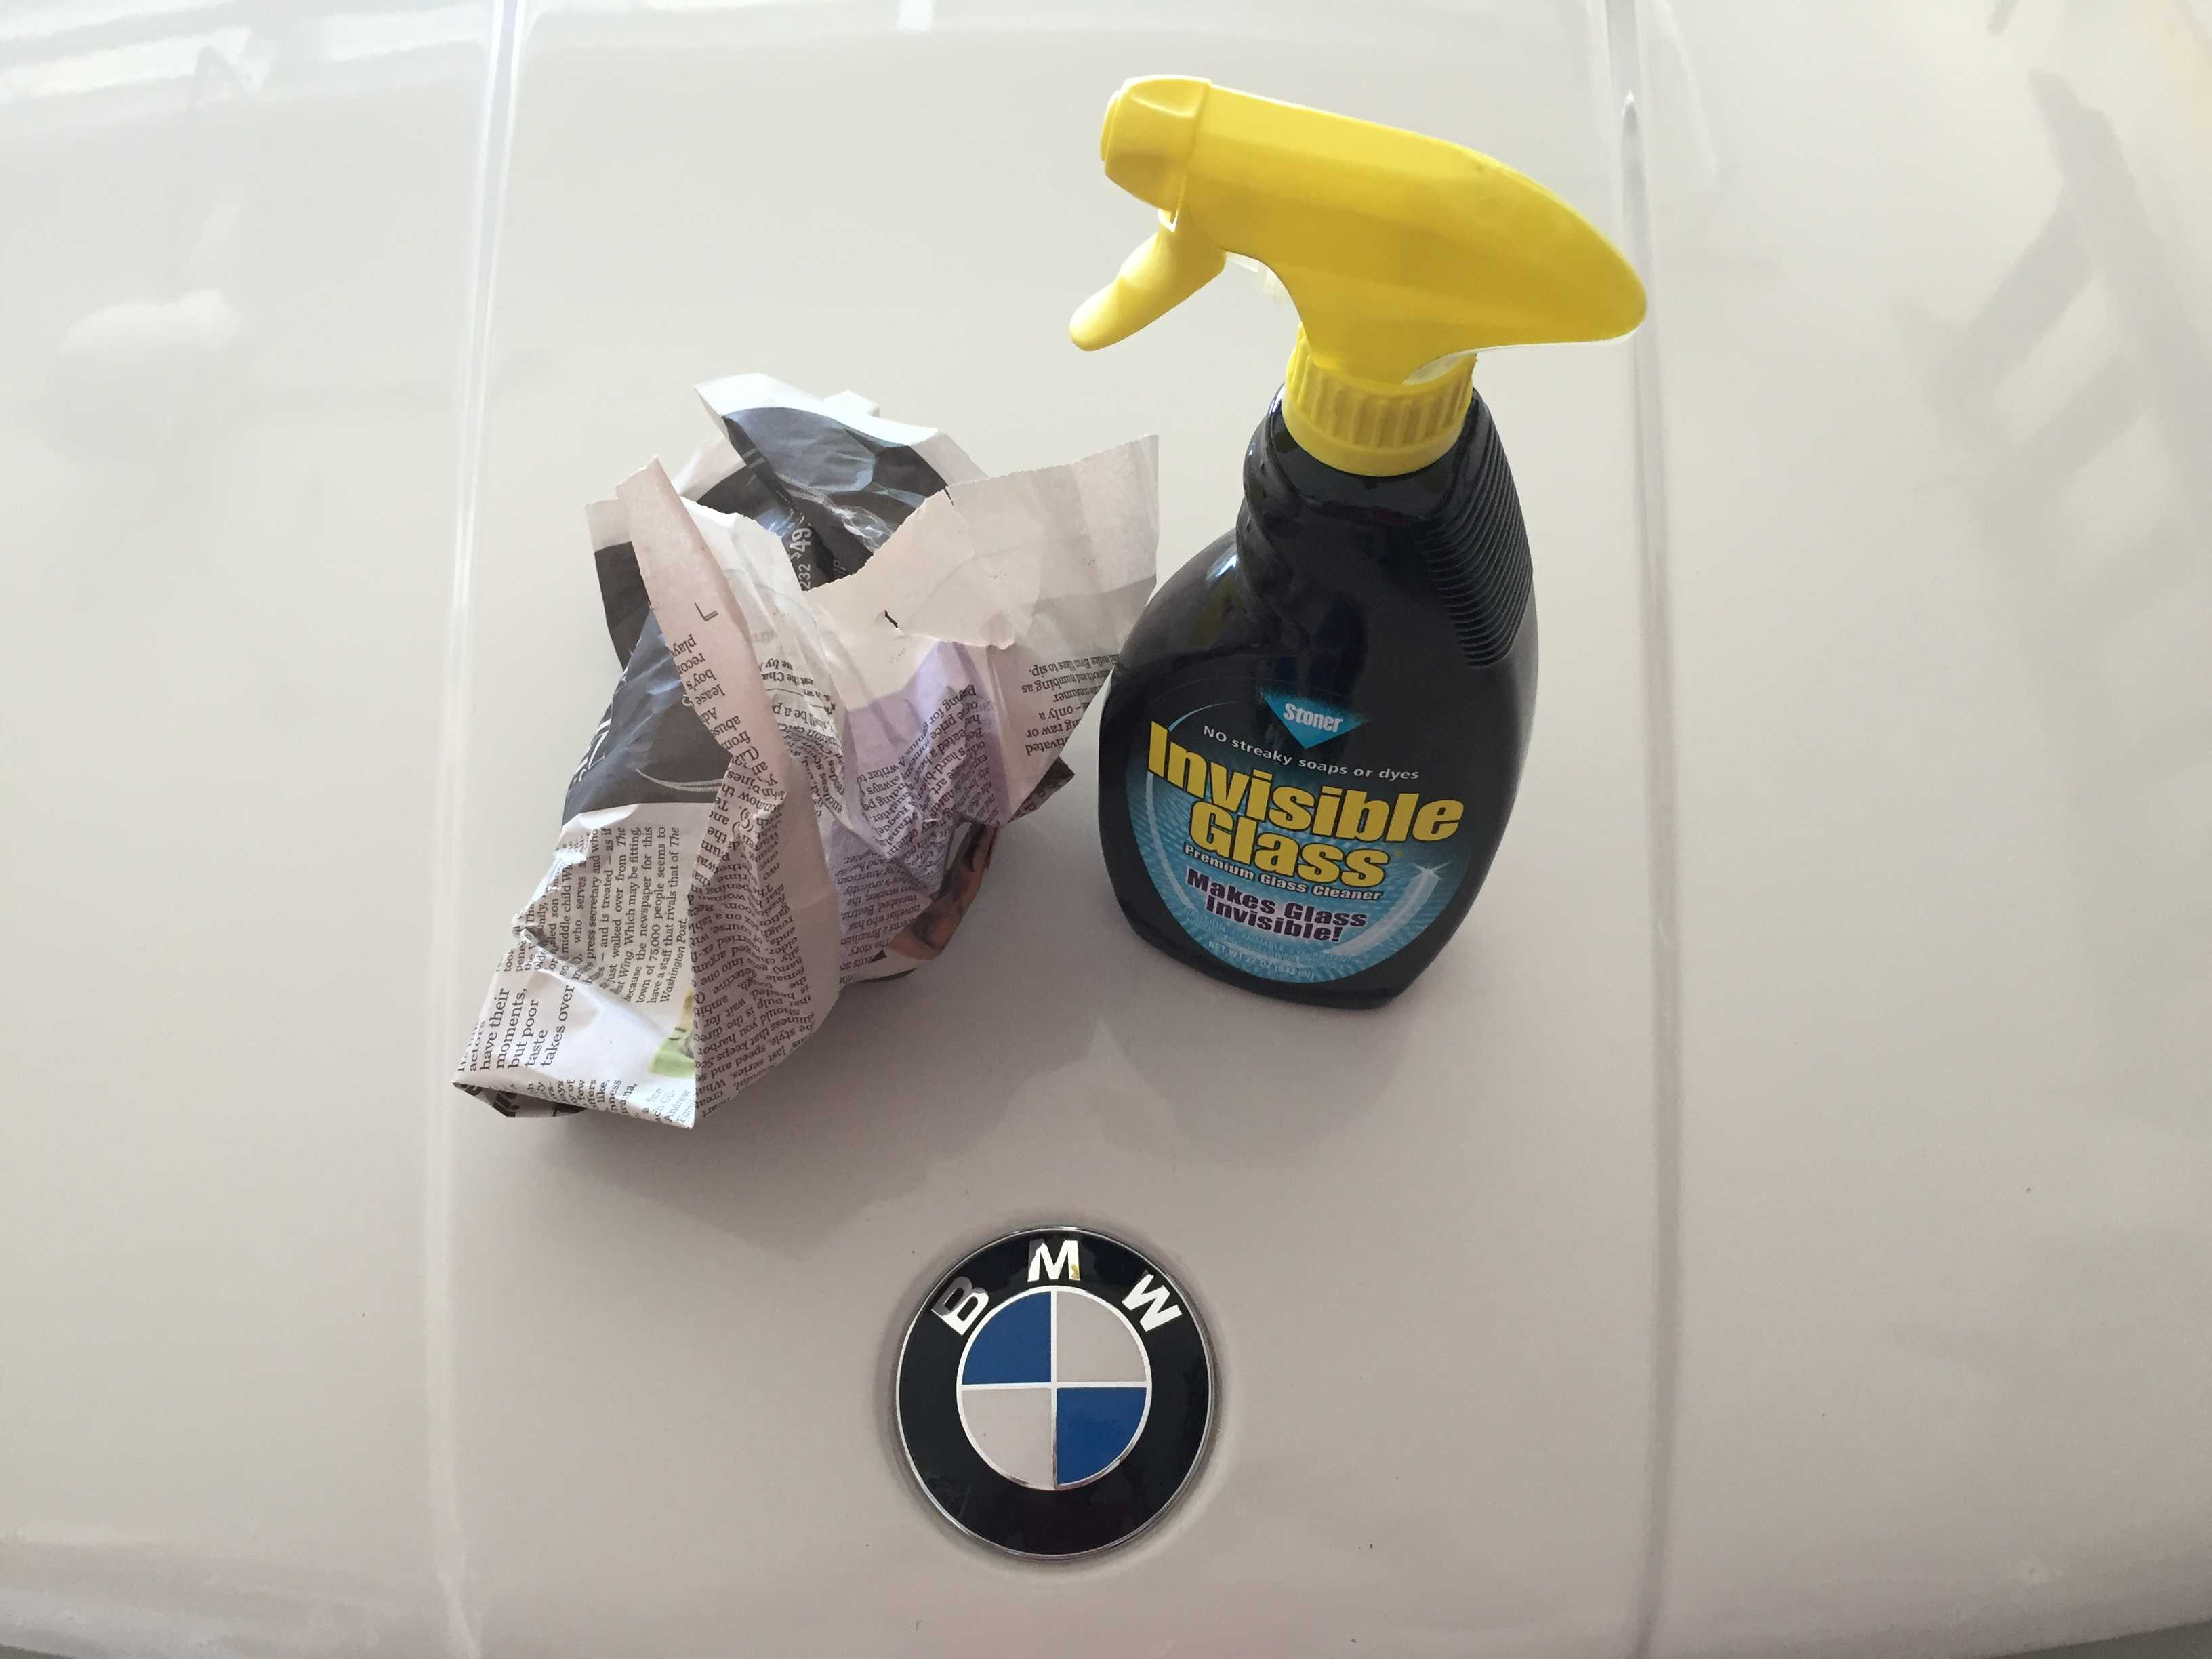 Invisible glass window cleaner BMW